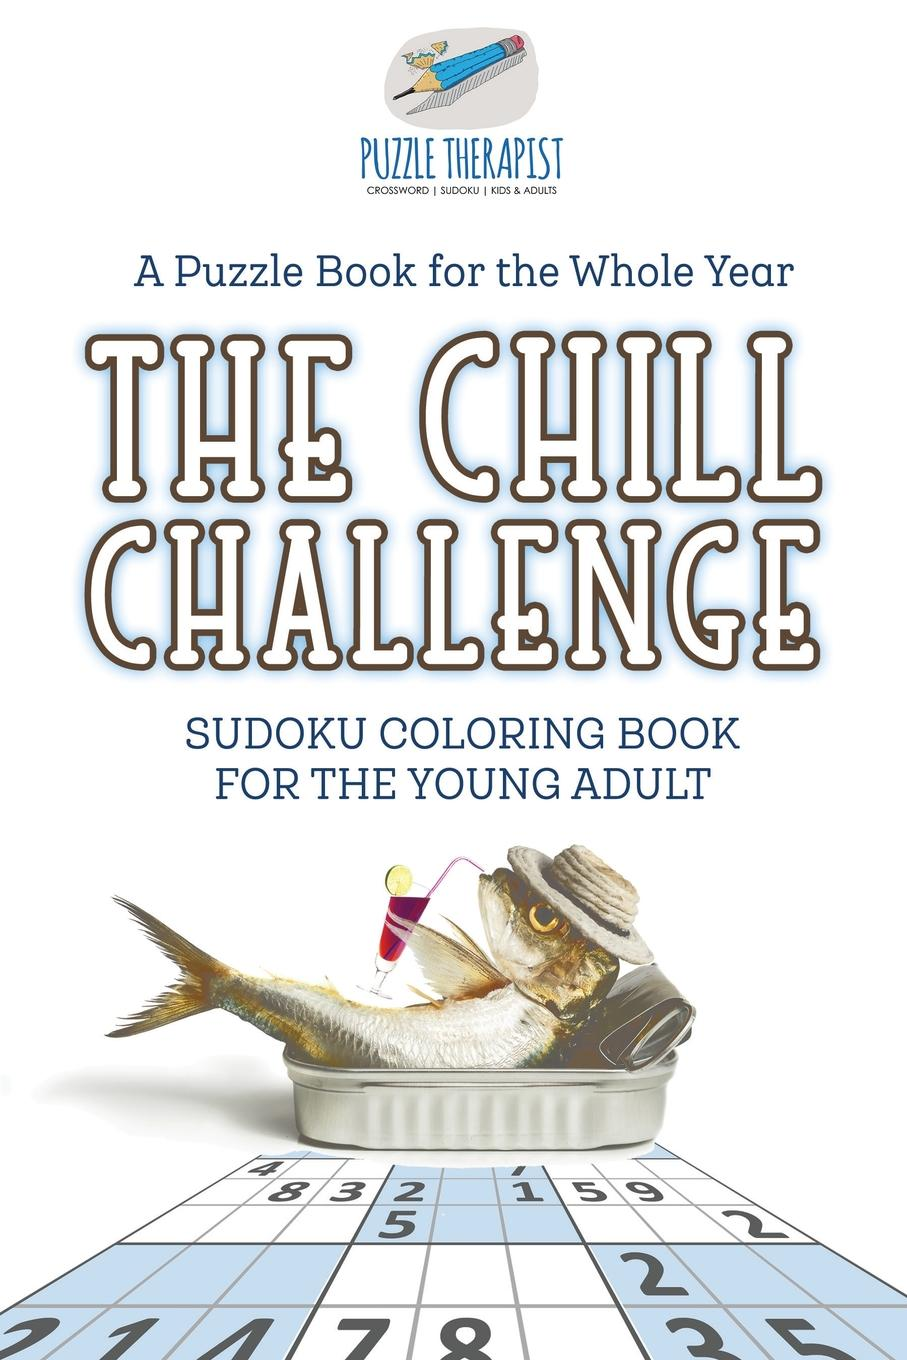 Puzzle Therapist The Chill Challenge . Sudoku Coloring Book for the Young Adult . A Puzzle Book for the Whole Year boxing balloon bot battle funny game toy bots box until the balloon pops family puzzle fun toys party game for adult